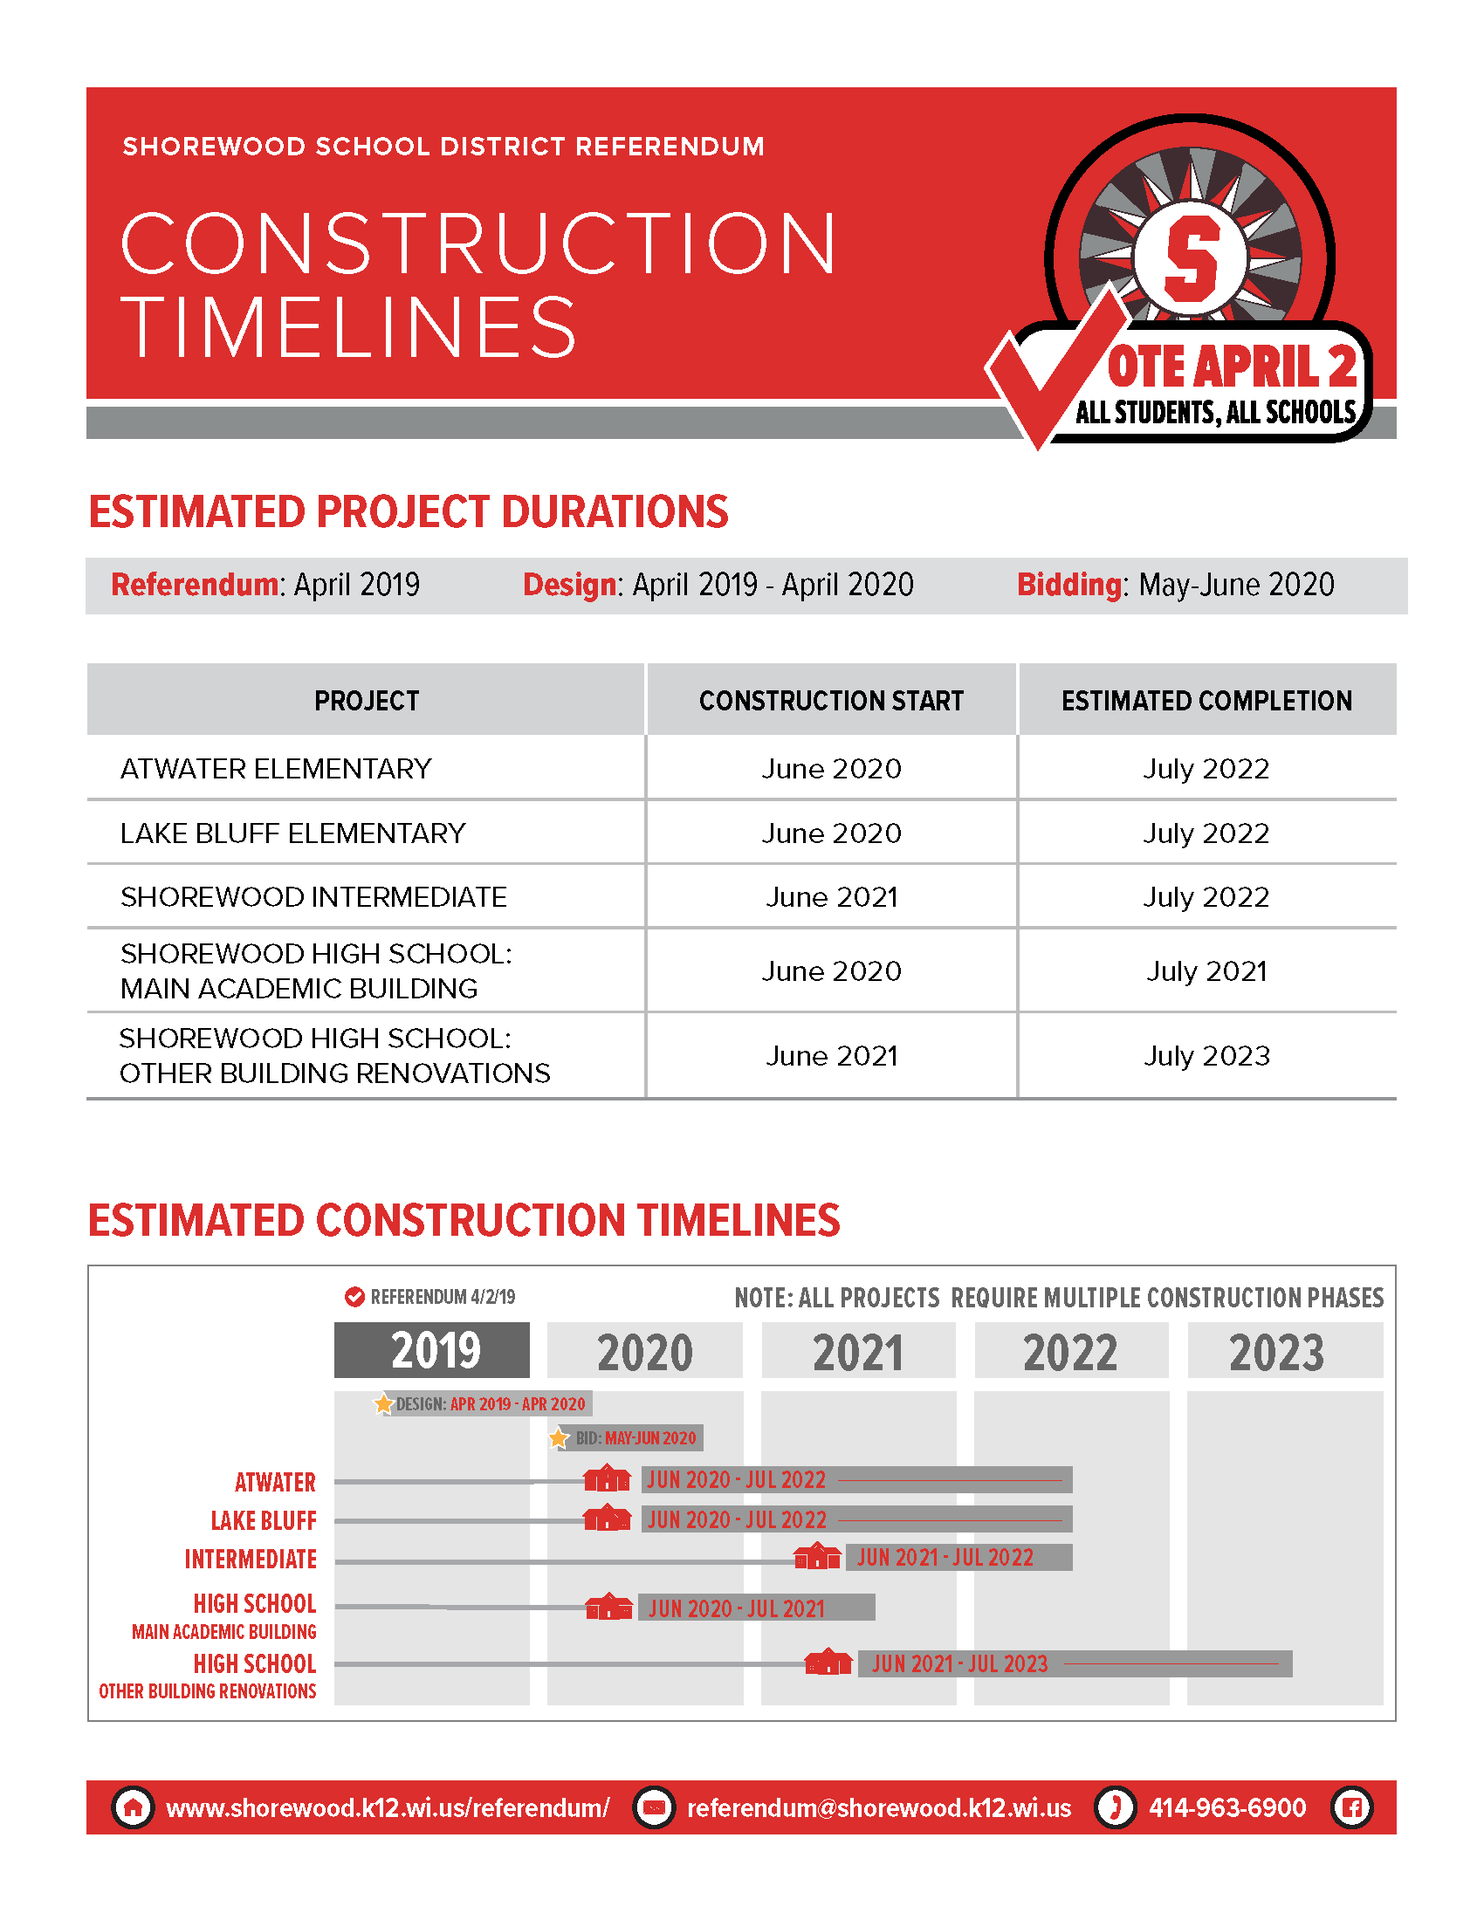 Shorewood Facilities Construction Timeline